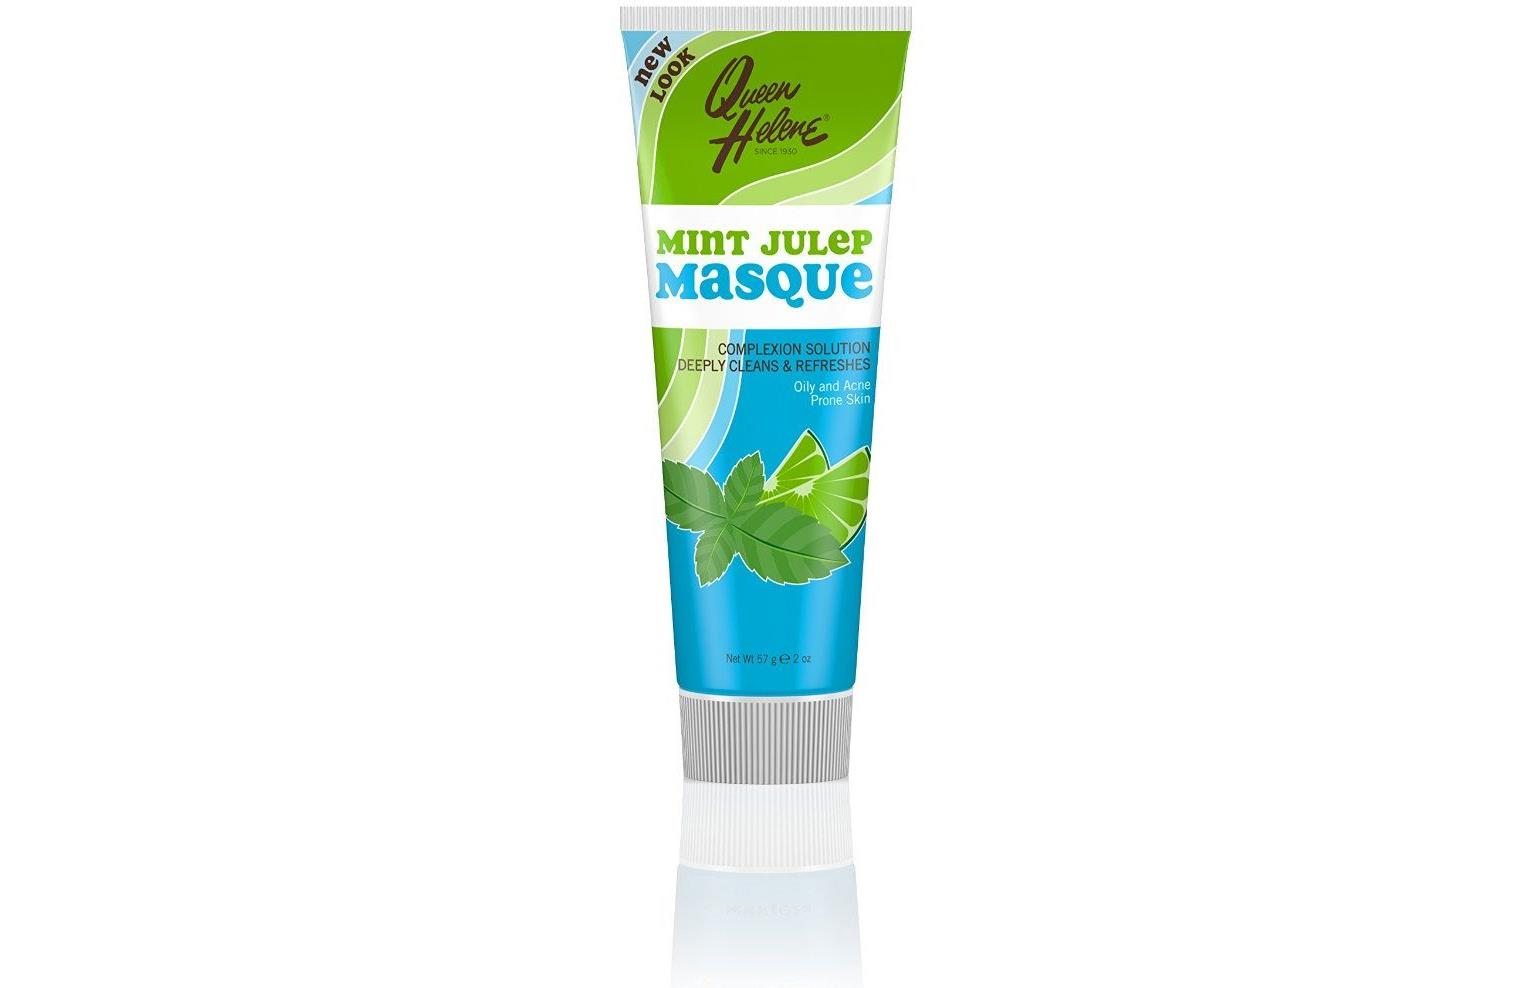 Helene Facial Masque, Mint Julep, 2 Ounce